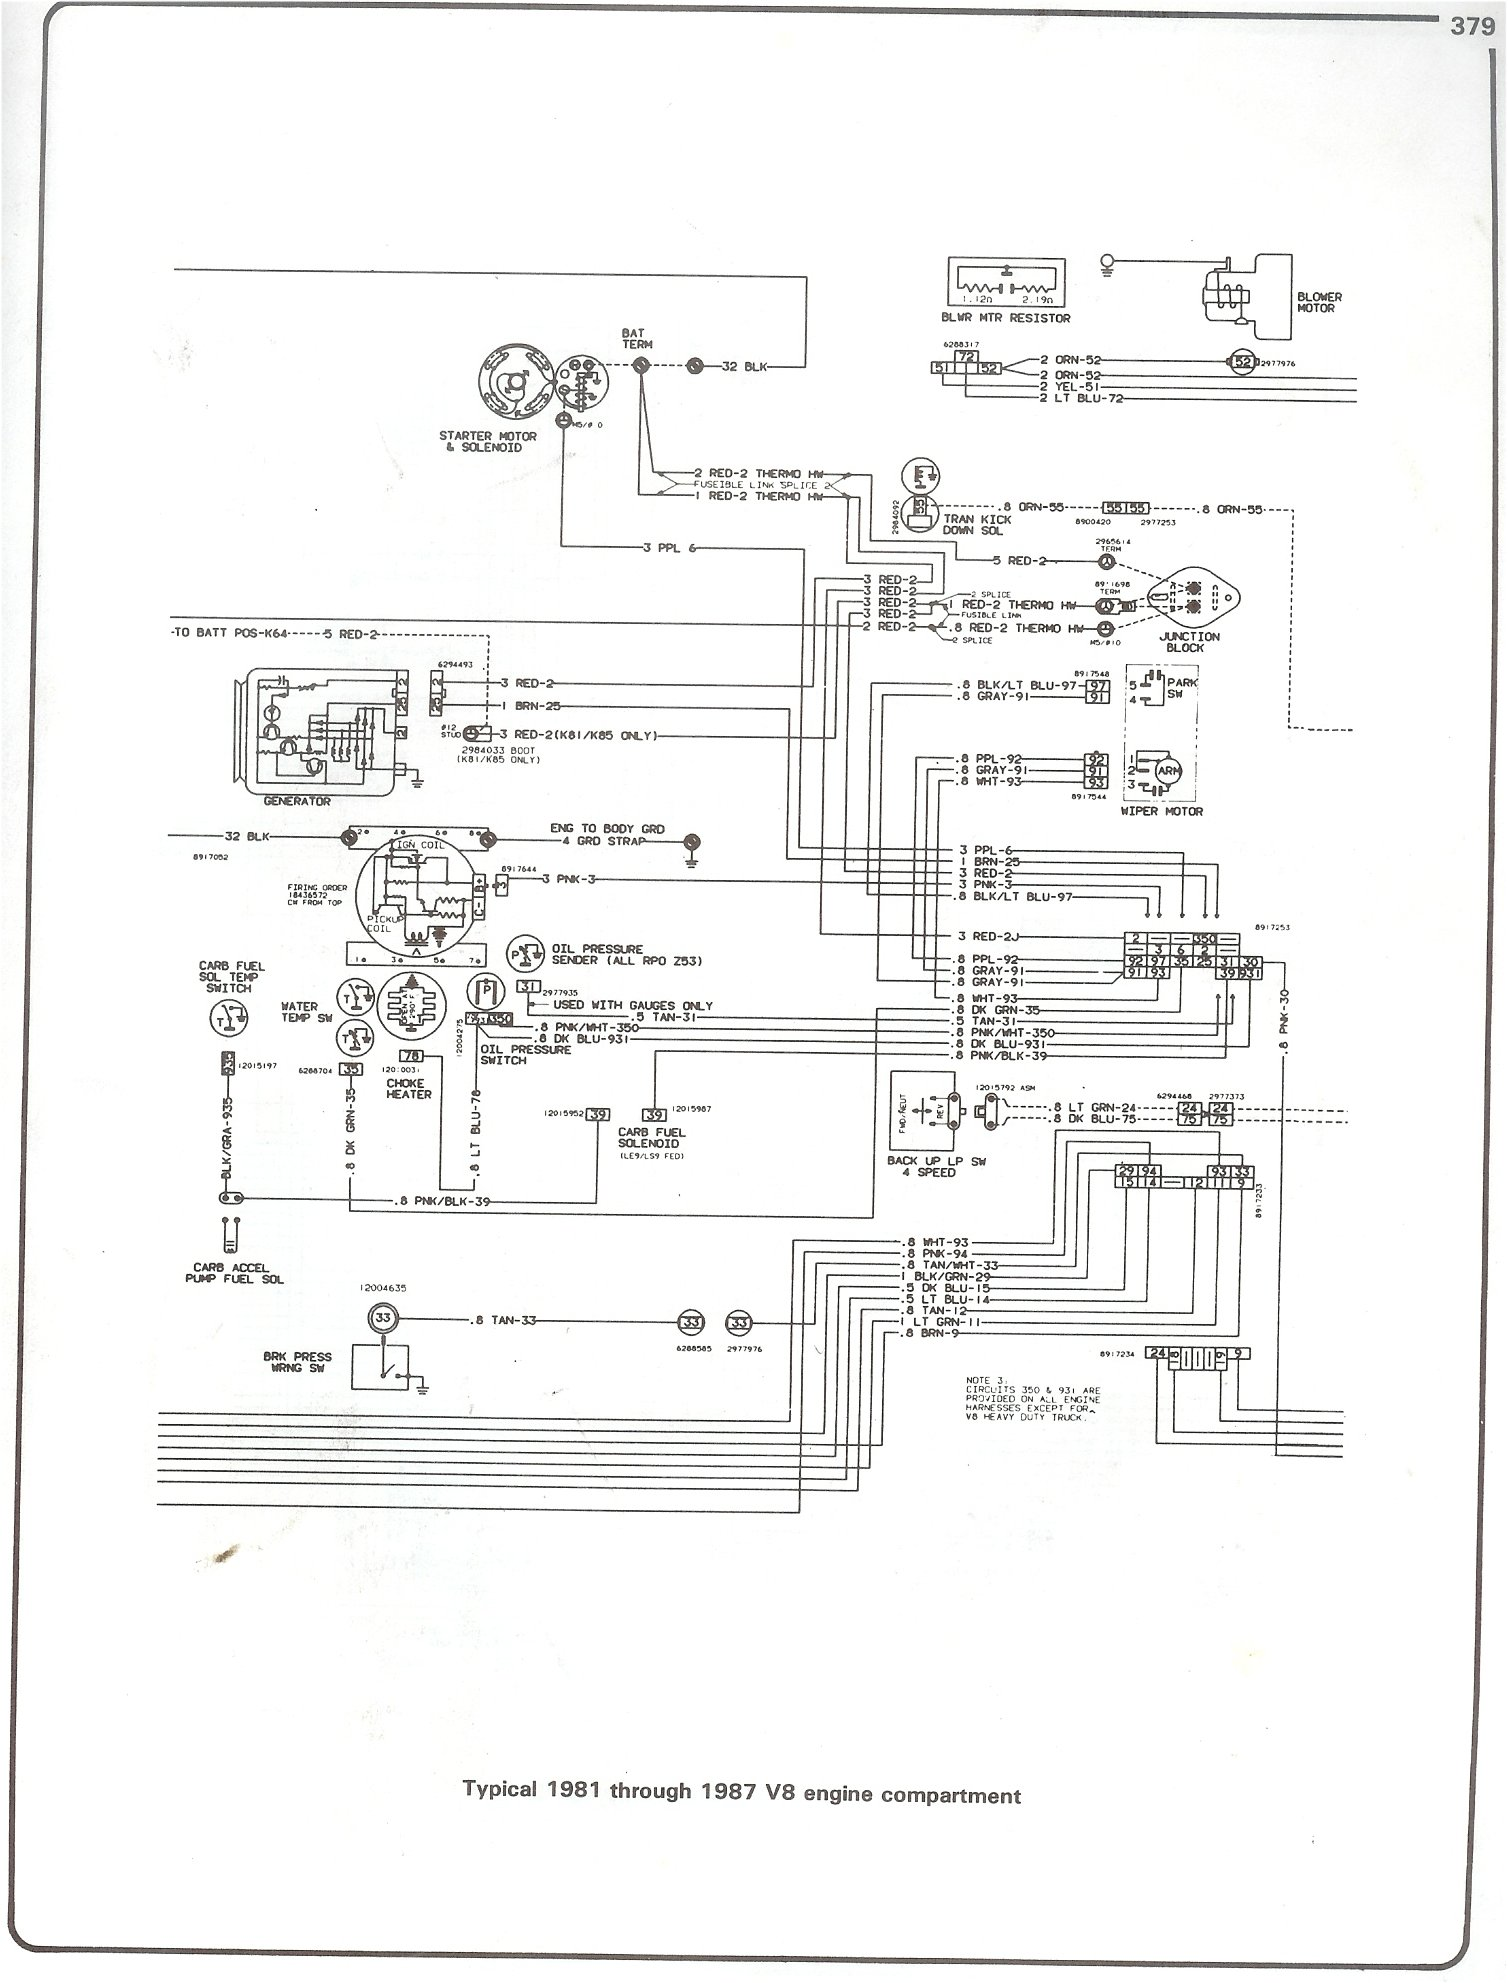 Chevy C10 Ignition Diagram Wiring Data 57 Truck Wire Complete 73 87 Diagrams Front Suspension 81 V8 Engine Compartment